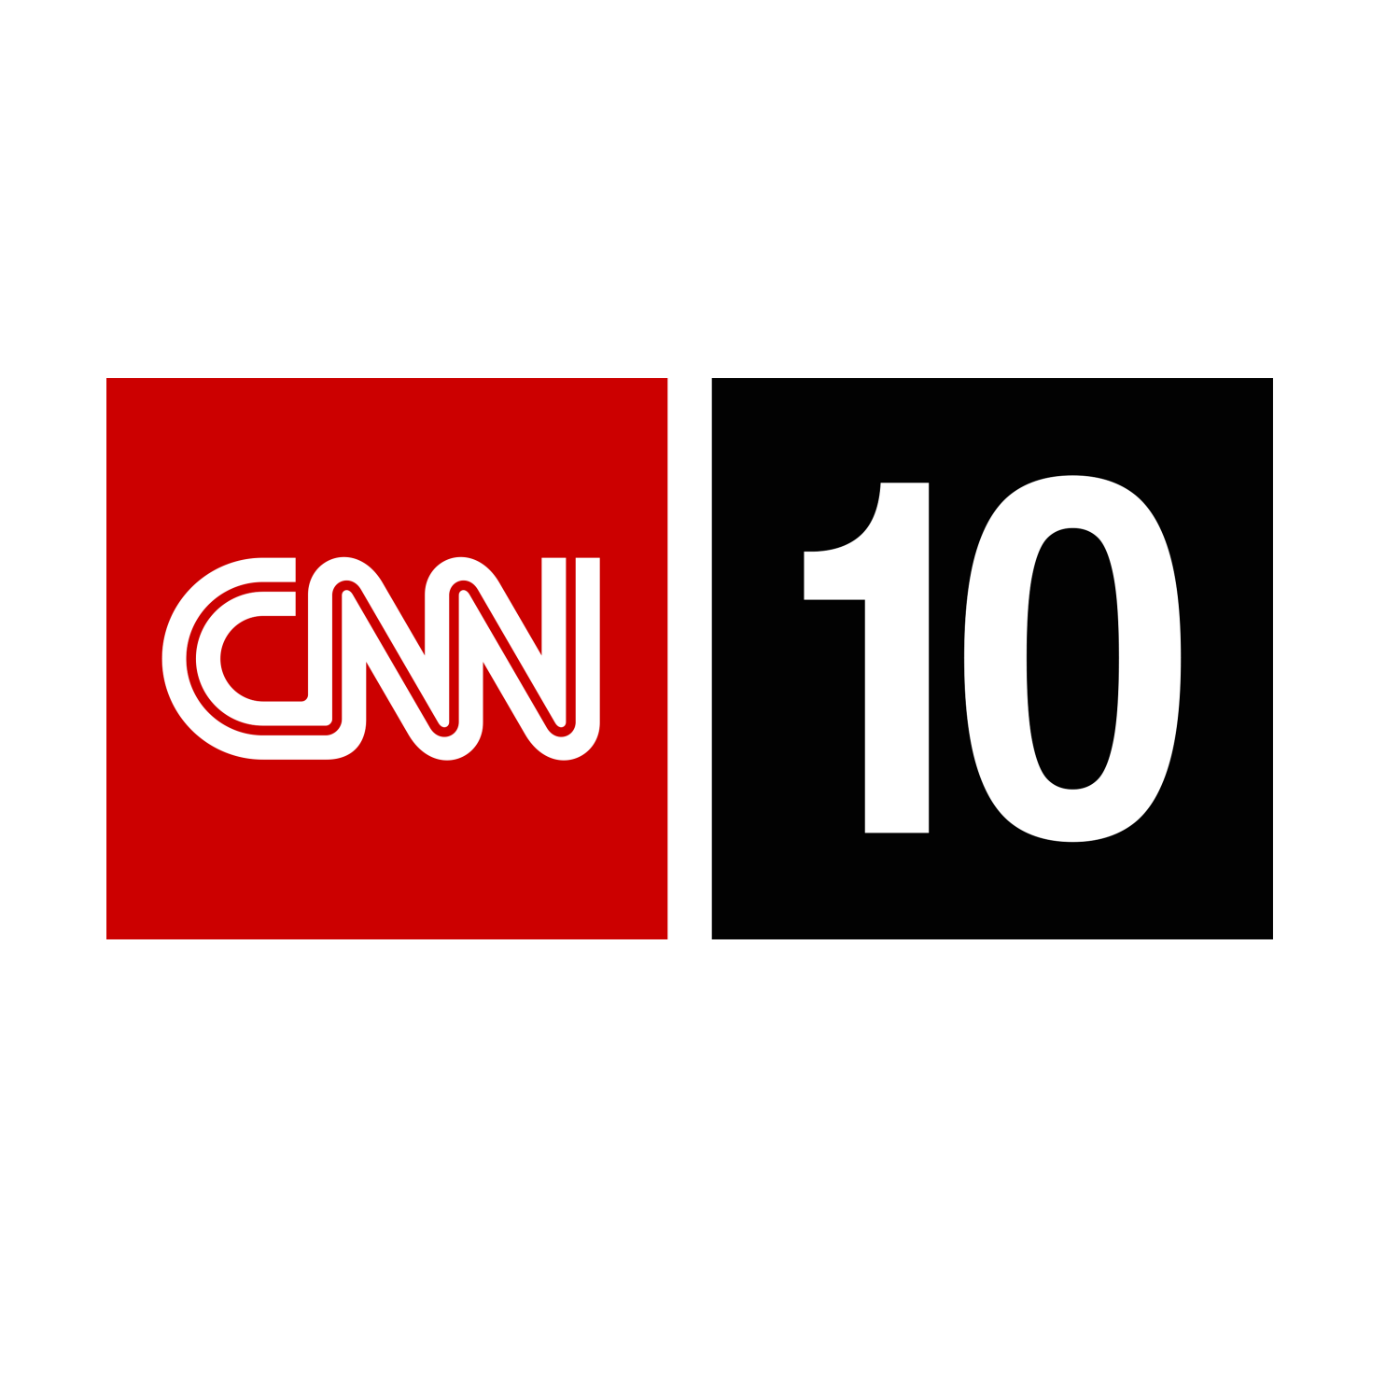 CNN Student News - September 26, 2012